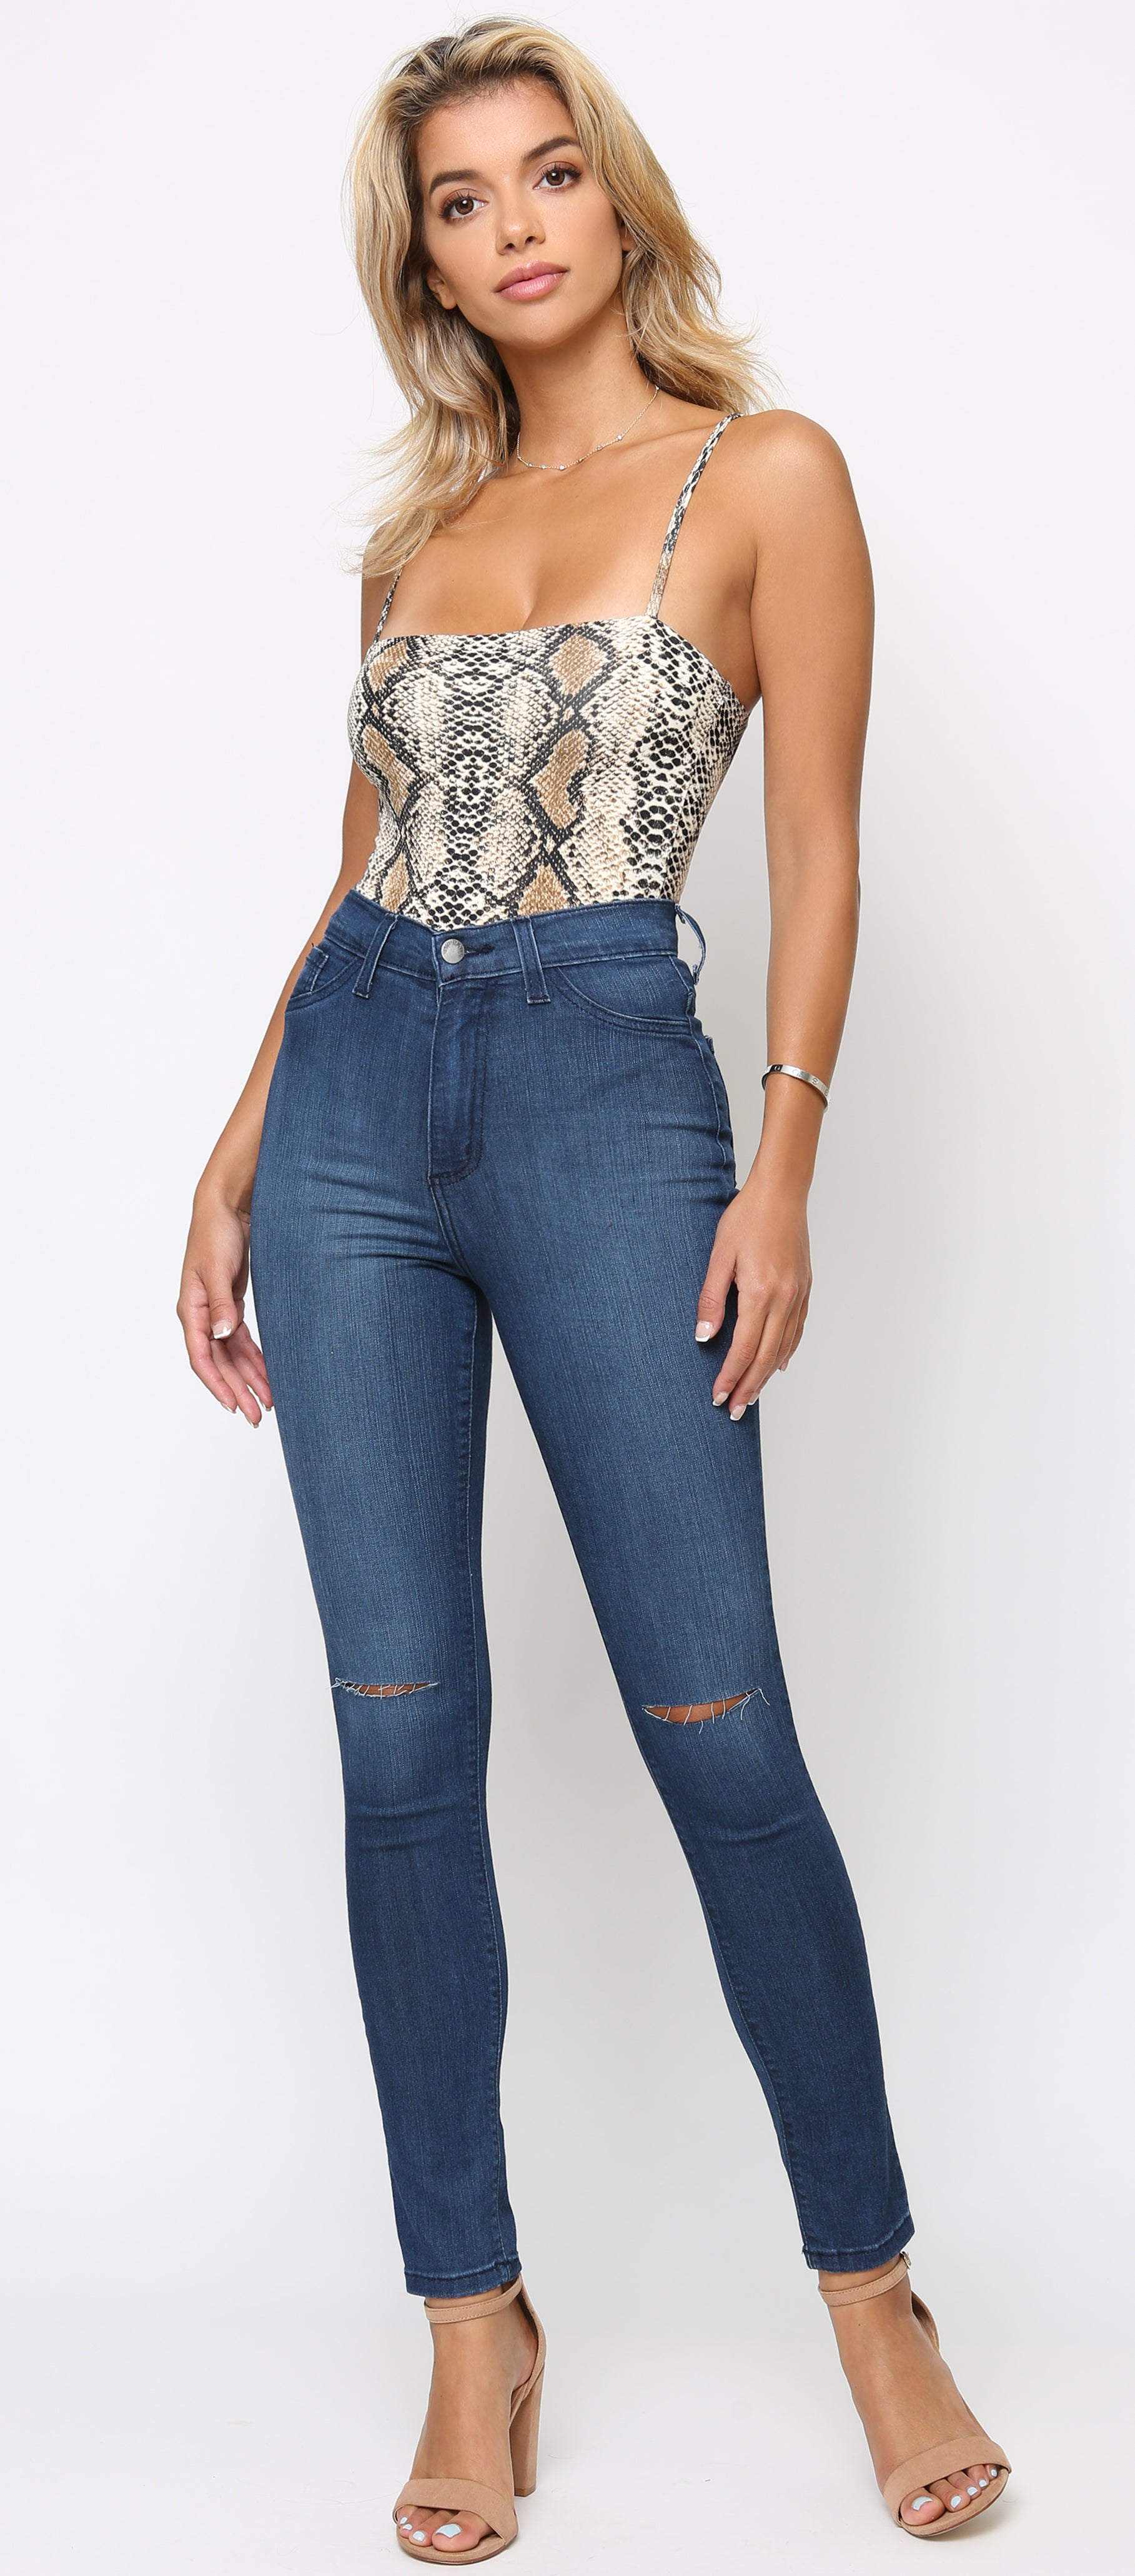 Jani Blue High Waist Knee Cut Stretch Jeans